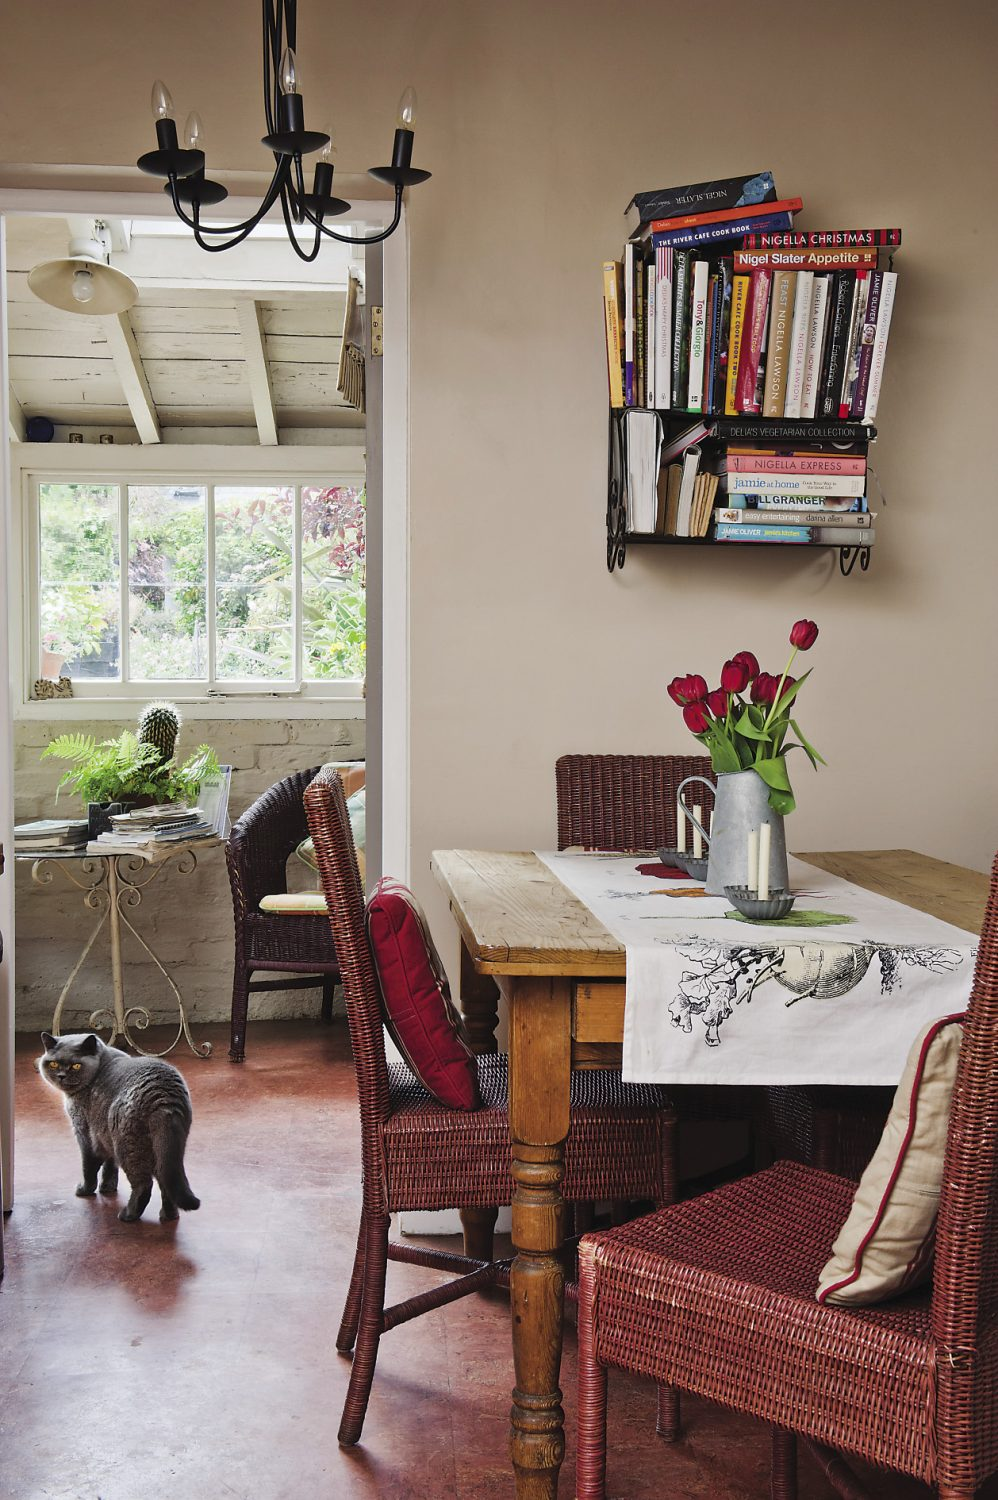 Wicker chairs surround the wooden table in the kitchen area. Above it, metal shelves house Ann's collection of cookery books